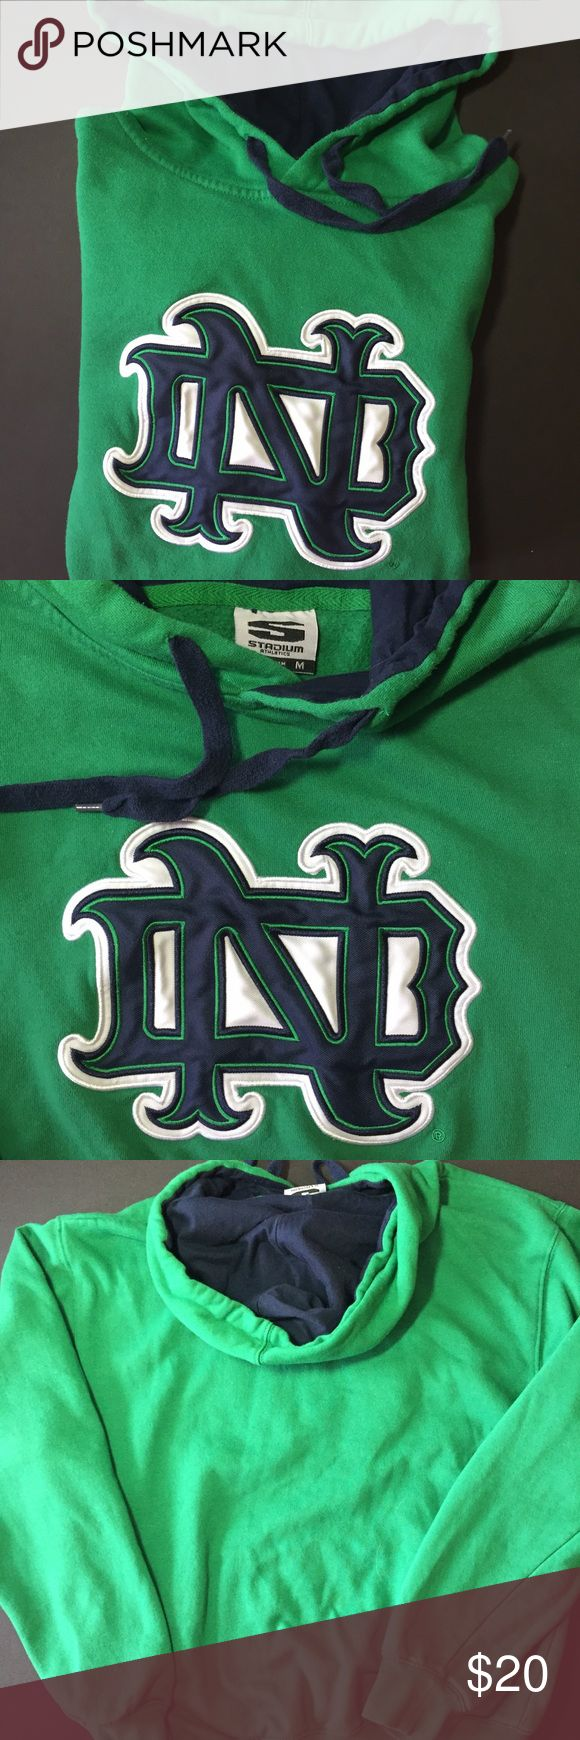 "Notre Dame Sweatshirt Don't ""fight on for ole' Notre Dame!"" Just buy the darn sweatshirt. You know you want it. Near perfect, I can't find any flaws. Stadium Athletics Shirts Sweatshirts & Hoodies"